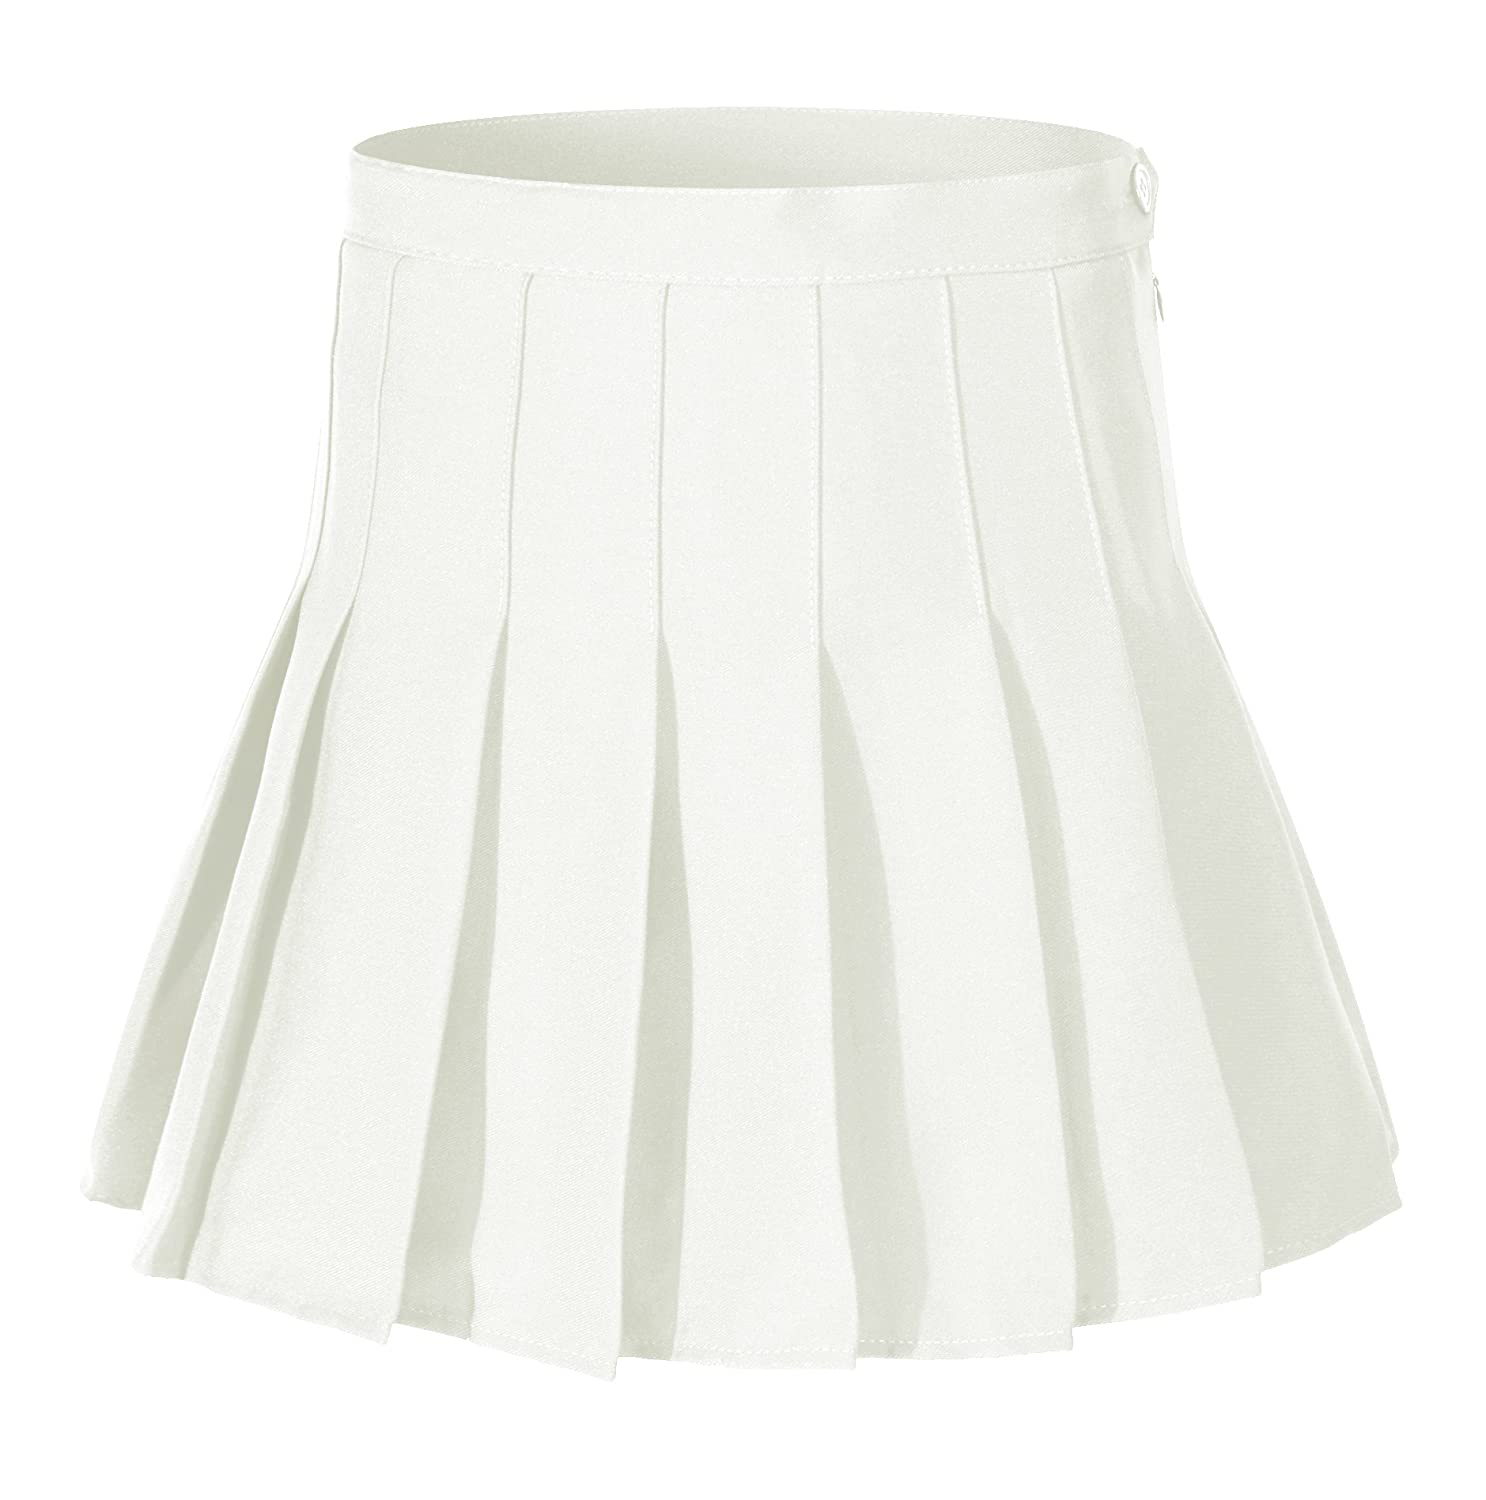 感謝の声続々! Beautifulfashionlife SHORTS B07CM9KLHX レディース B07CM9KLHX White Single-layer Waist:27.5 Single-layer Inch Inch|White Waist:27.5 Inch|White Single-layer, ランドリープラス:a65b4d6d --- mcrisartesanato.com.br